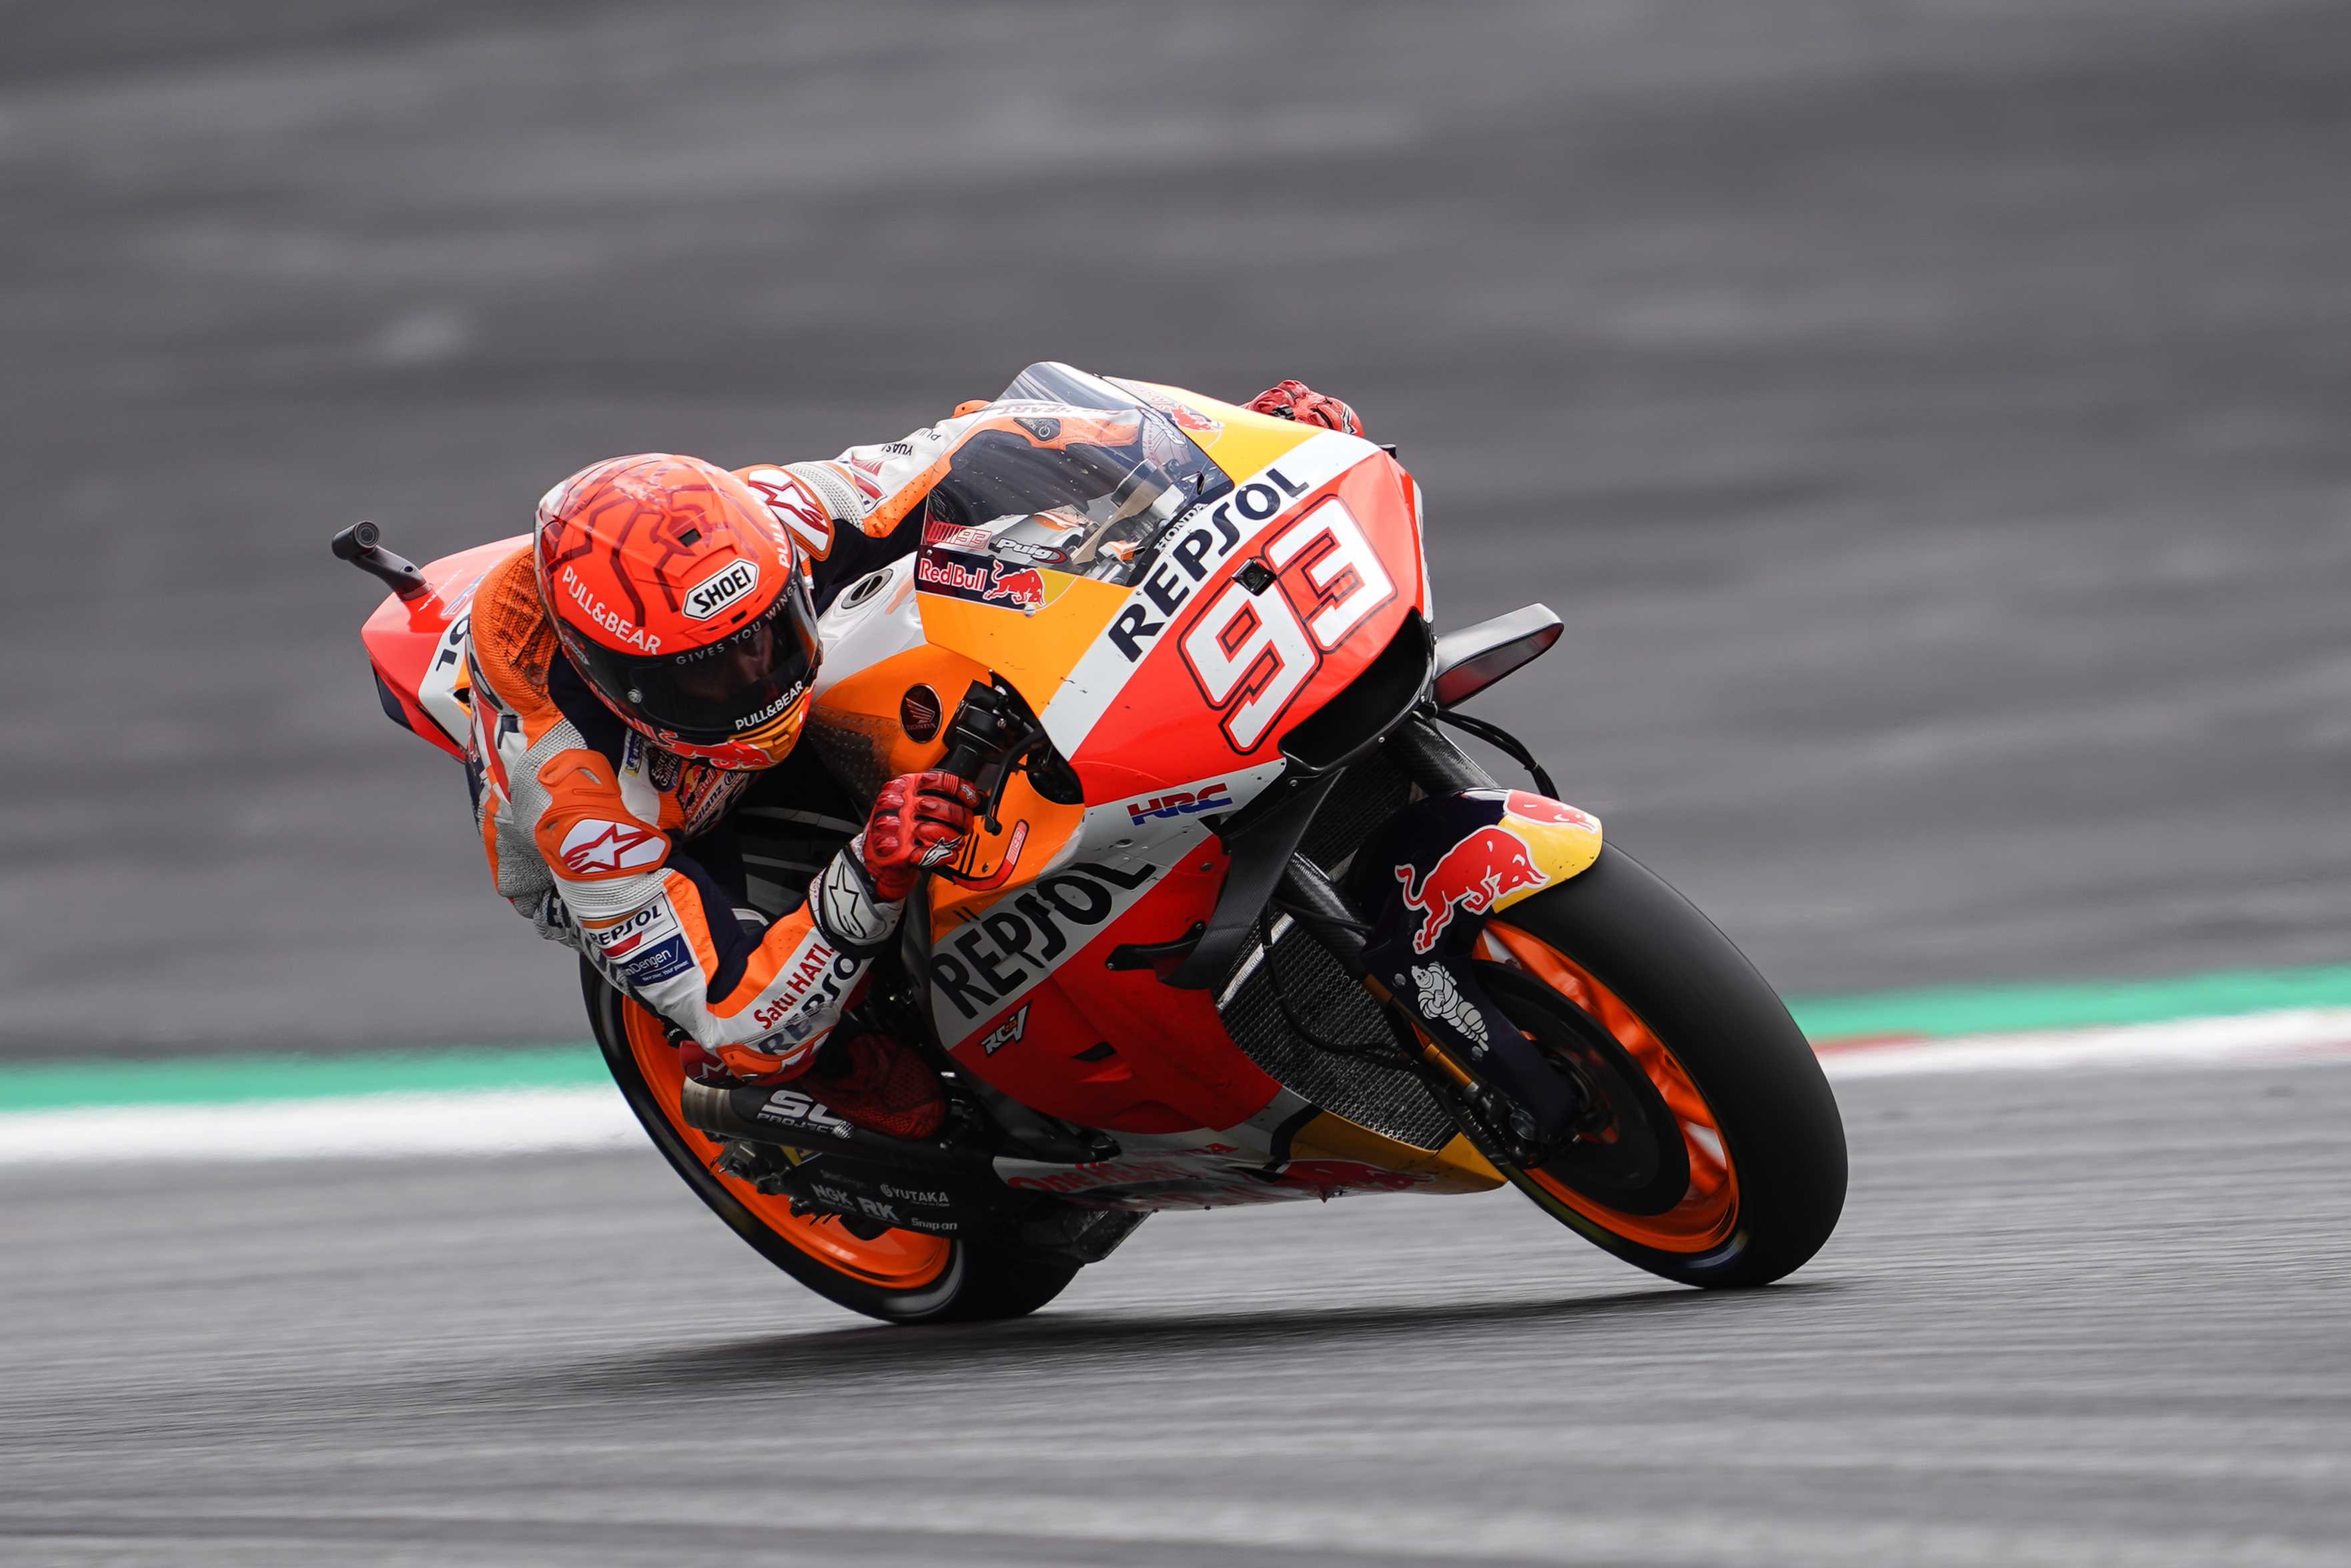 Márquez competes for victory in Austria